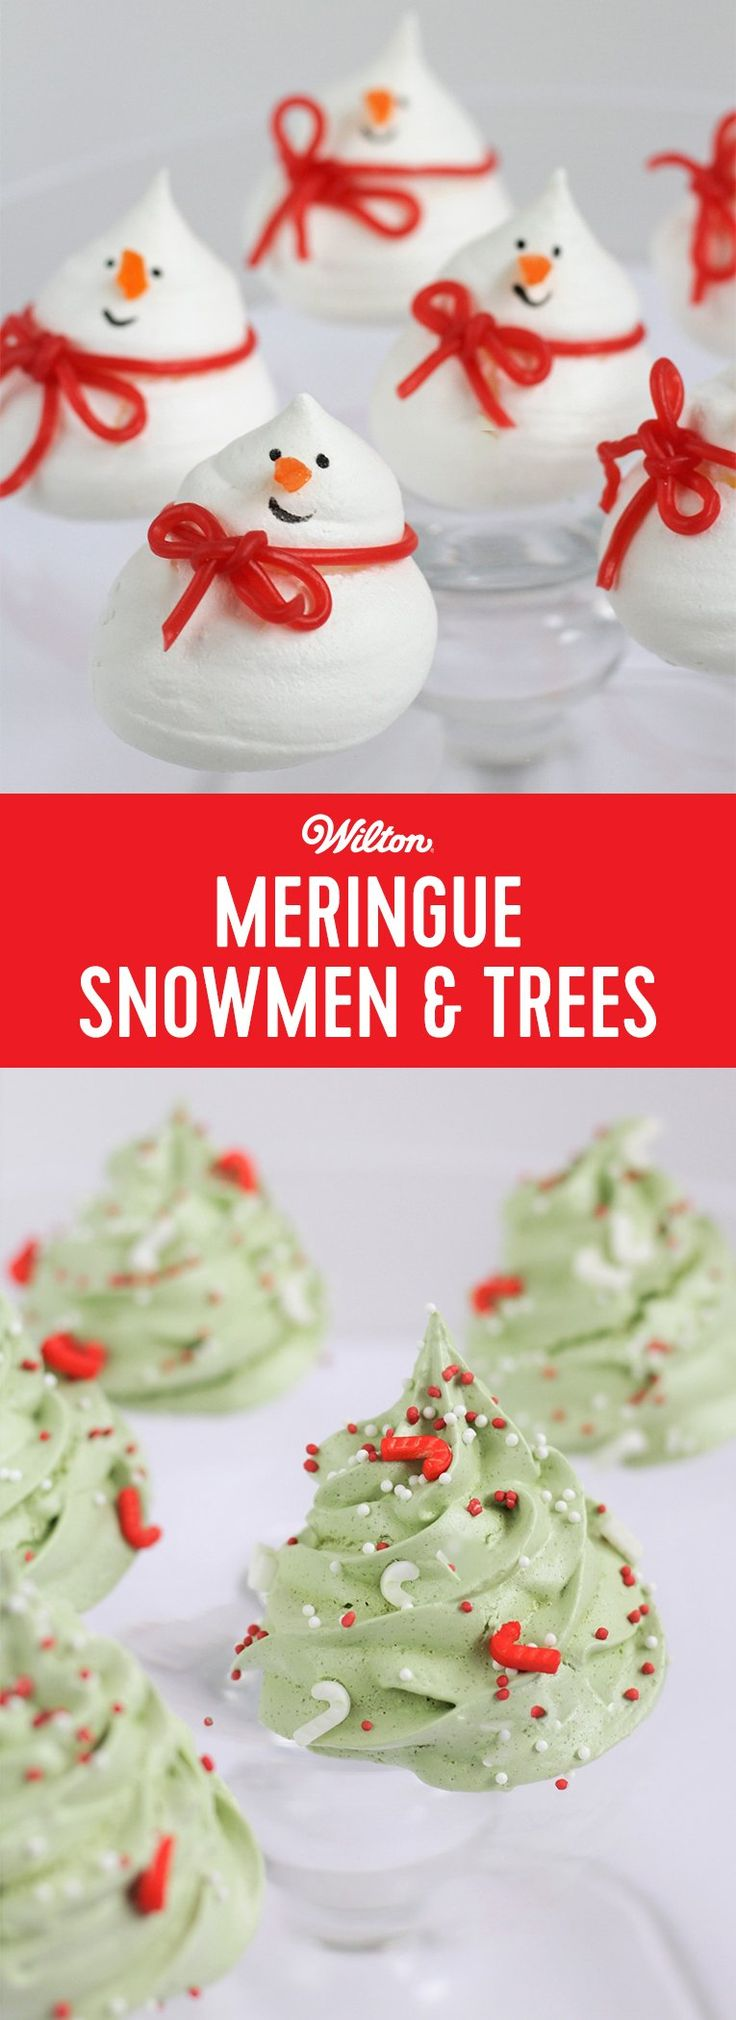 Meringue Snowmen and Trees - Why not decorate your Christmas Cake with these little cute snowmen and tree meringues? You could also package them up for some beautiful festive gifts! Get the little ones involved! They would love to decorate the trees with sprinkles and paint some funny expressions on the snowman's faces. #christmas #meringues #snowman #wiltoncakes